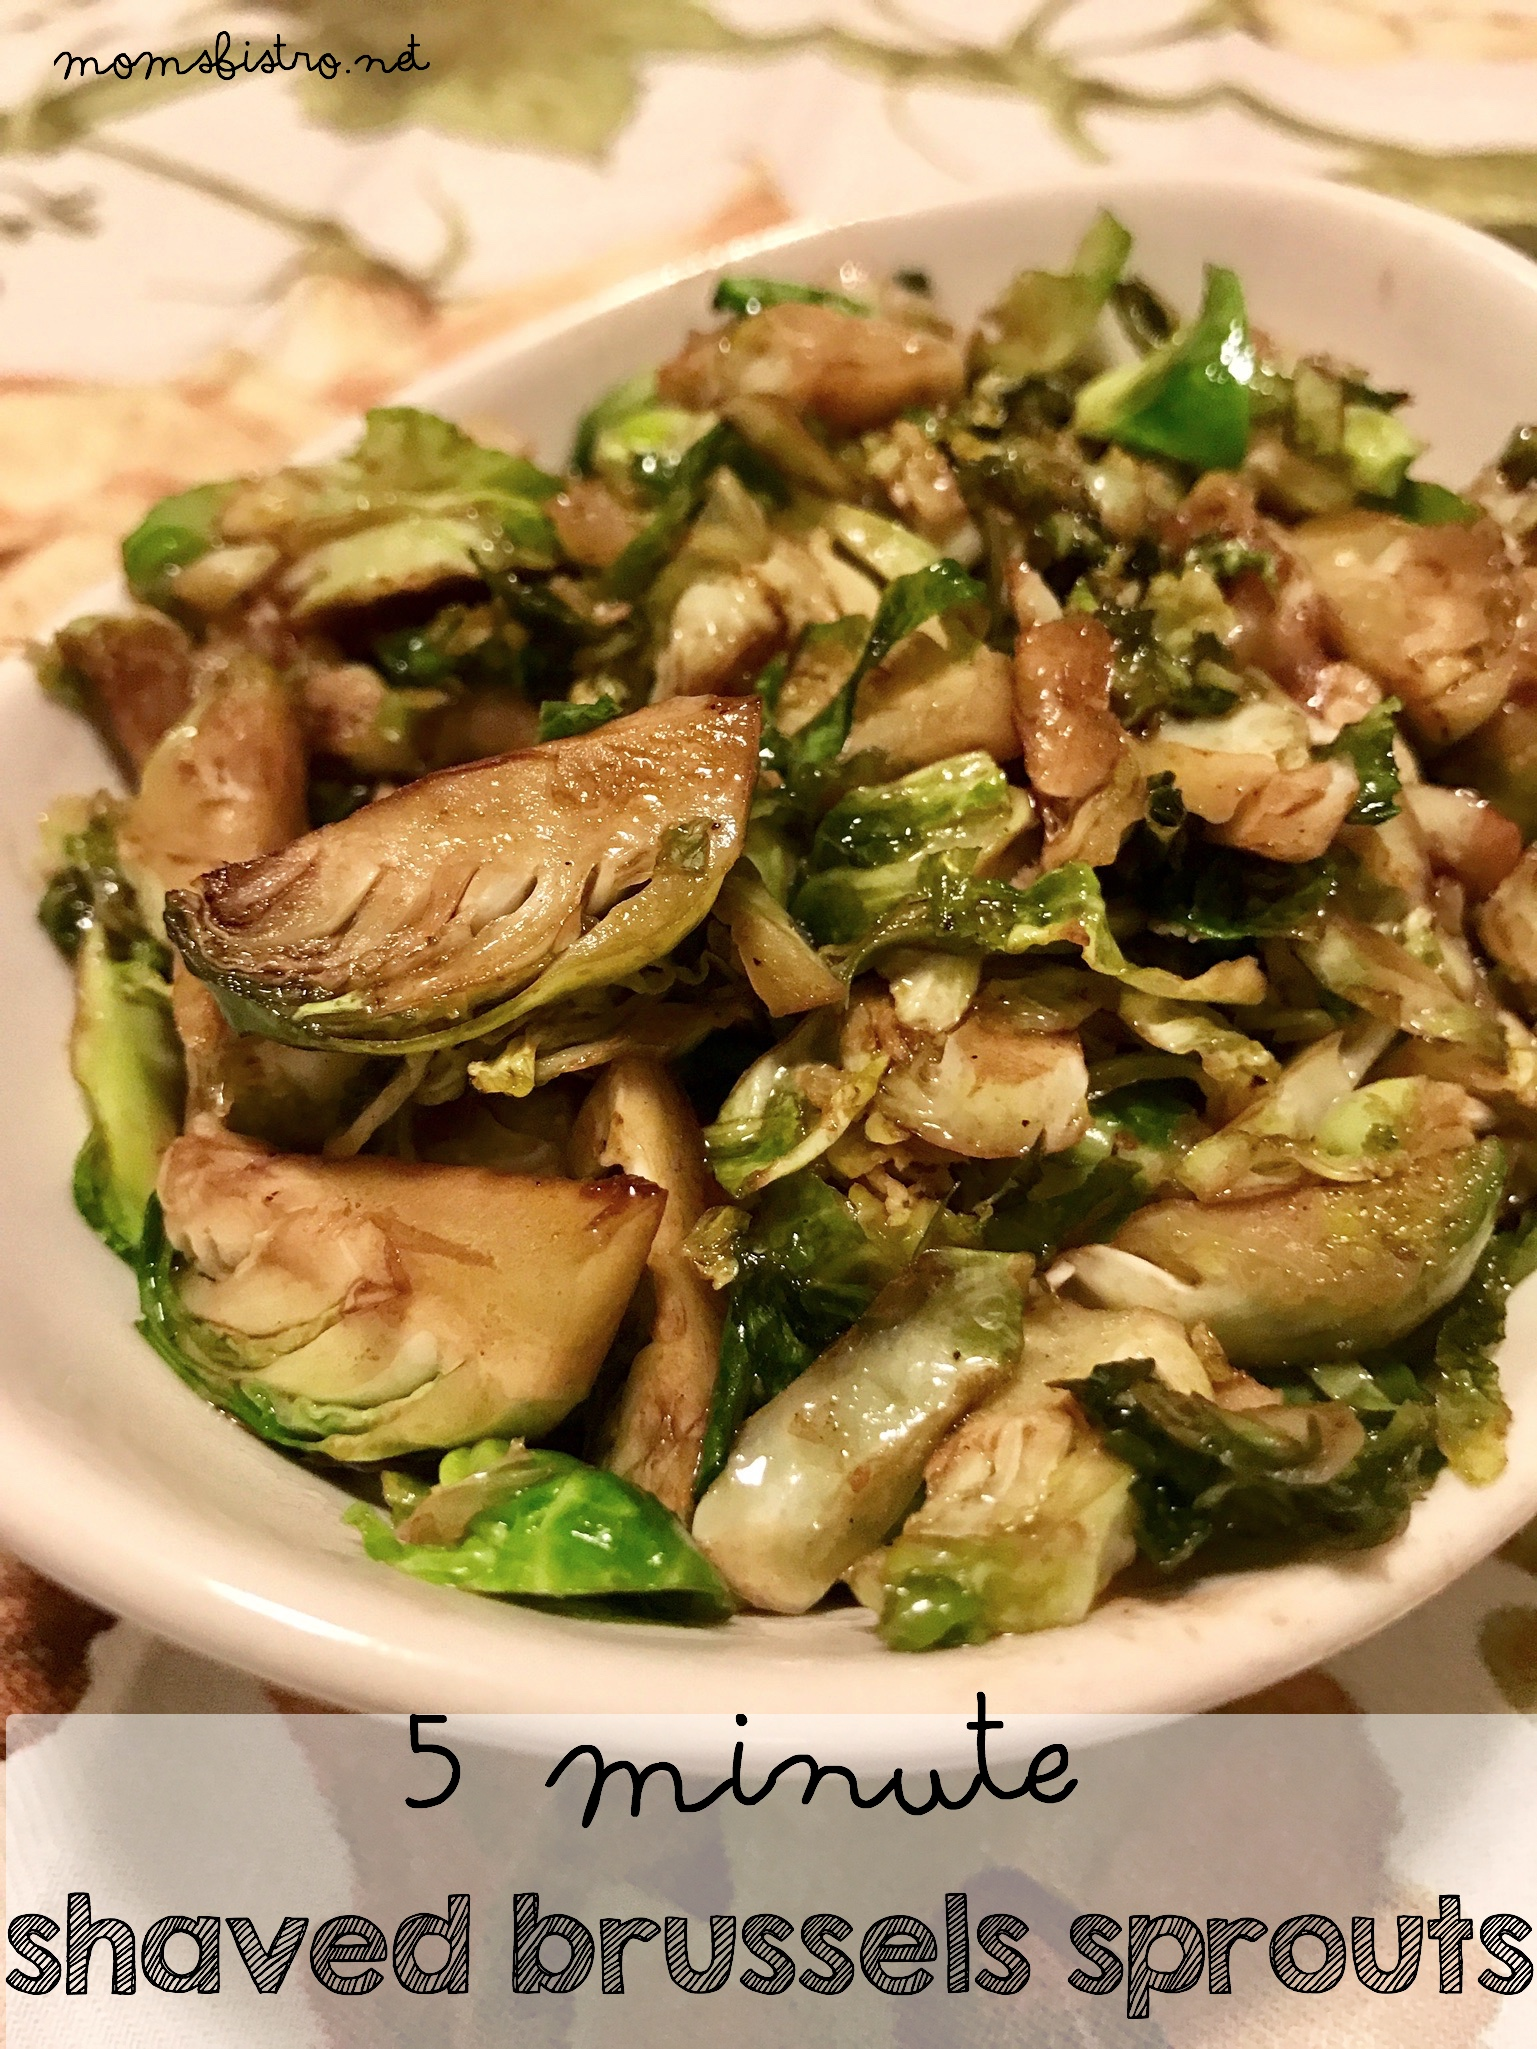 5 Minute Shreddedd Brussels Sprouts